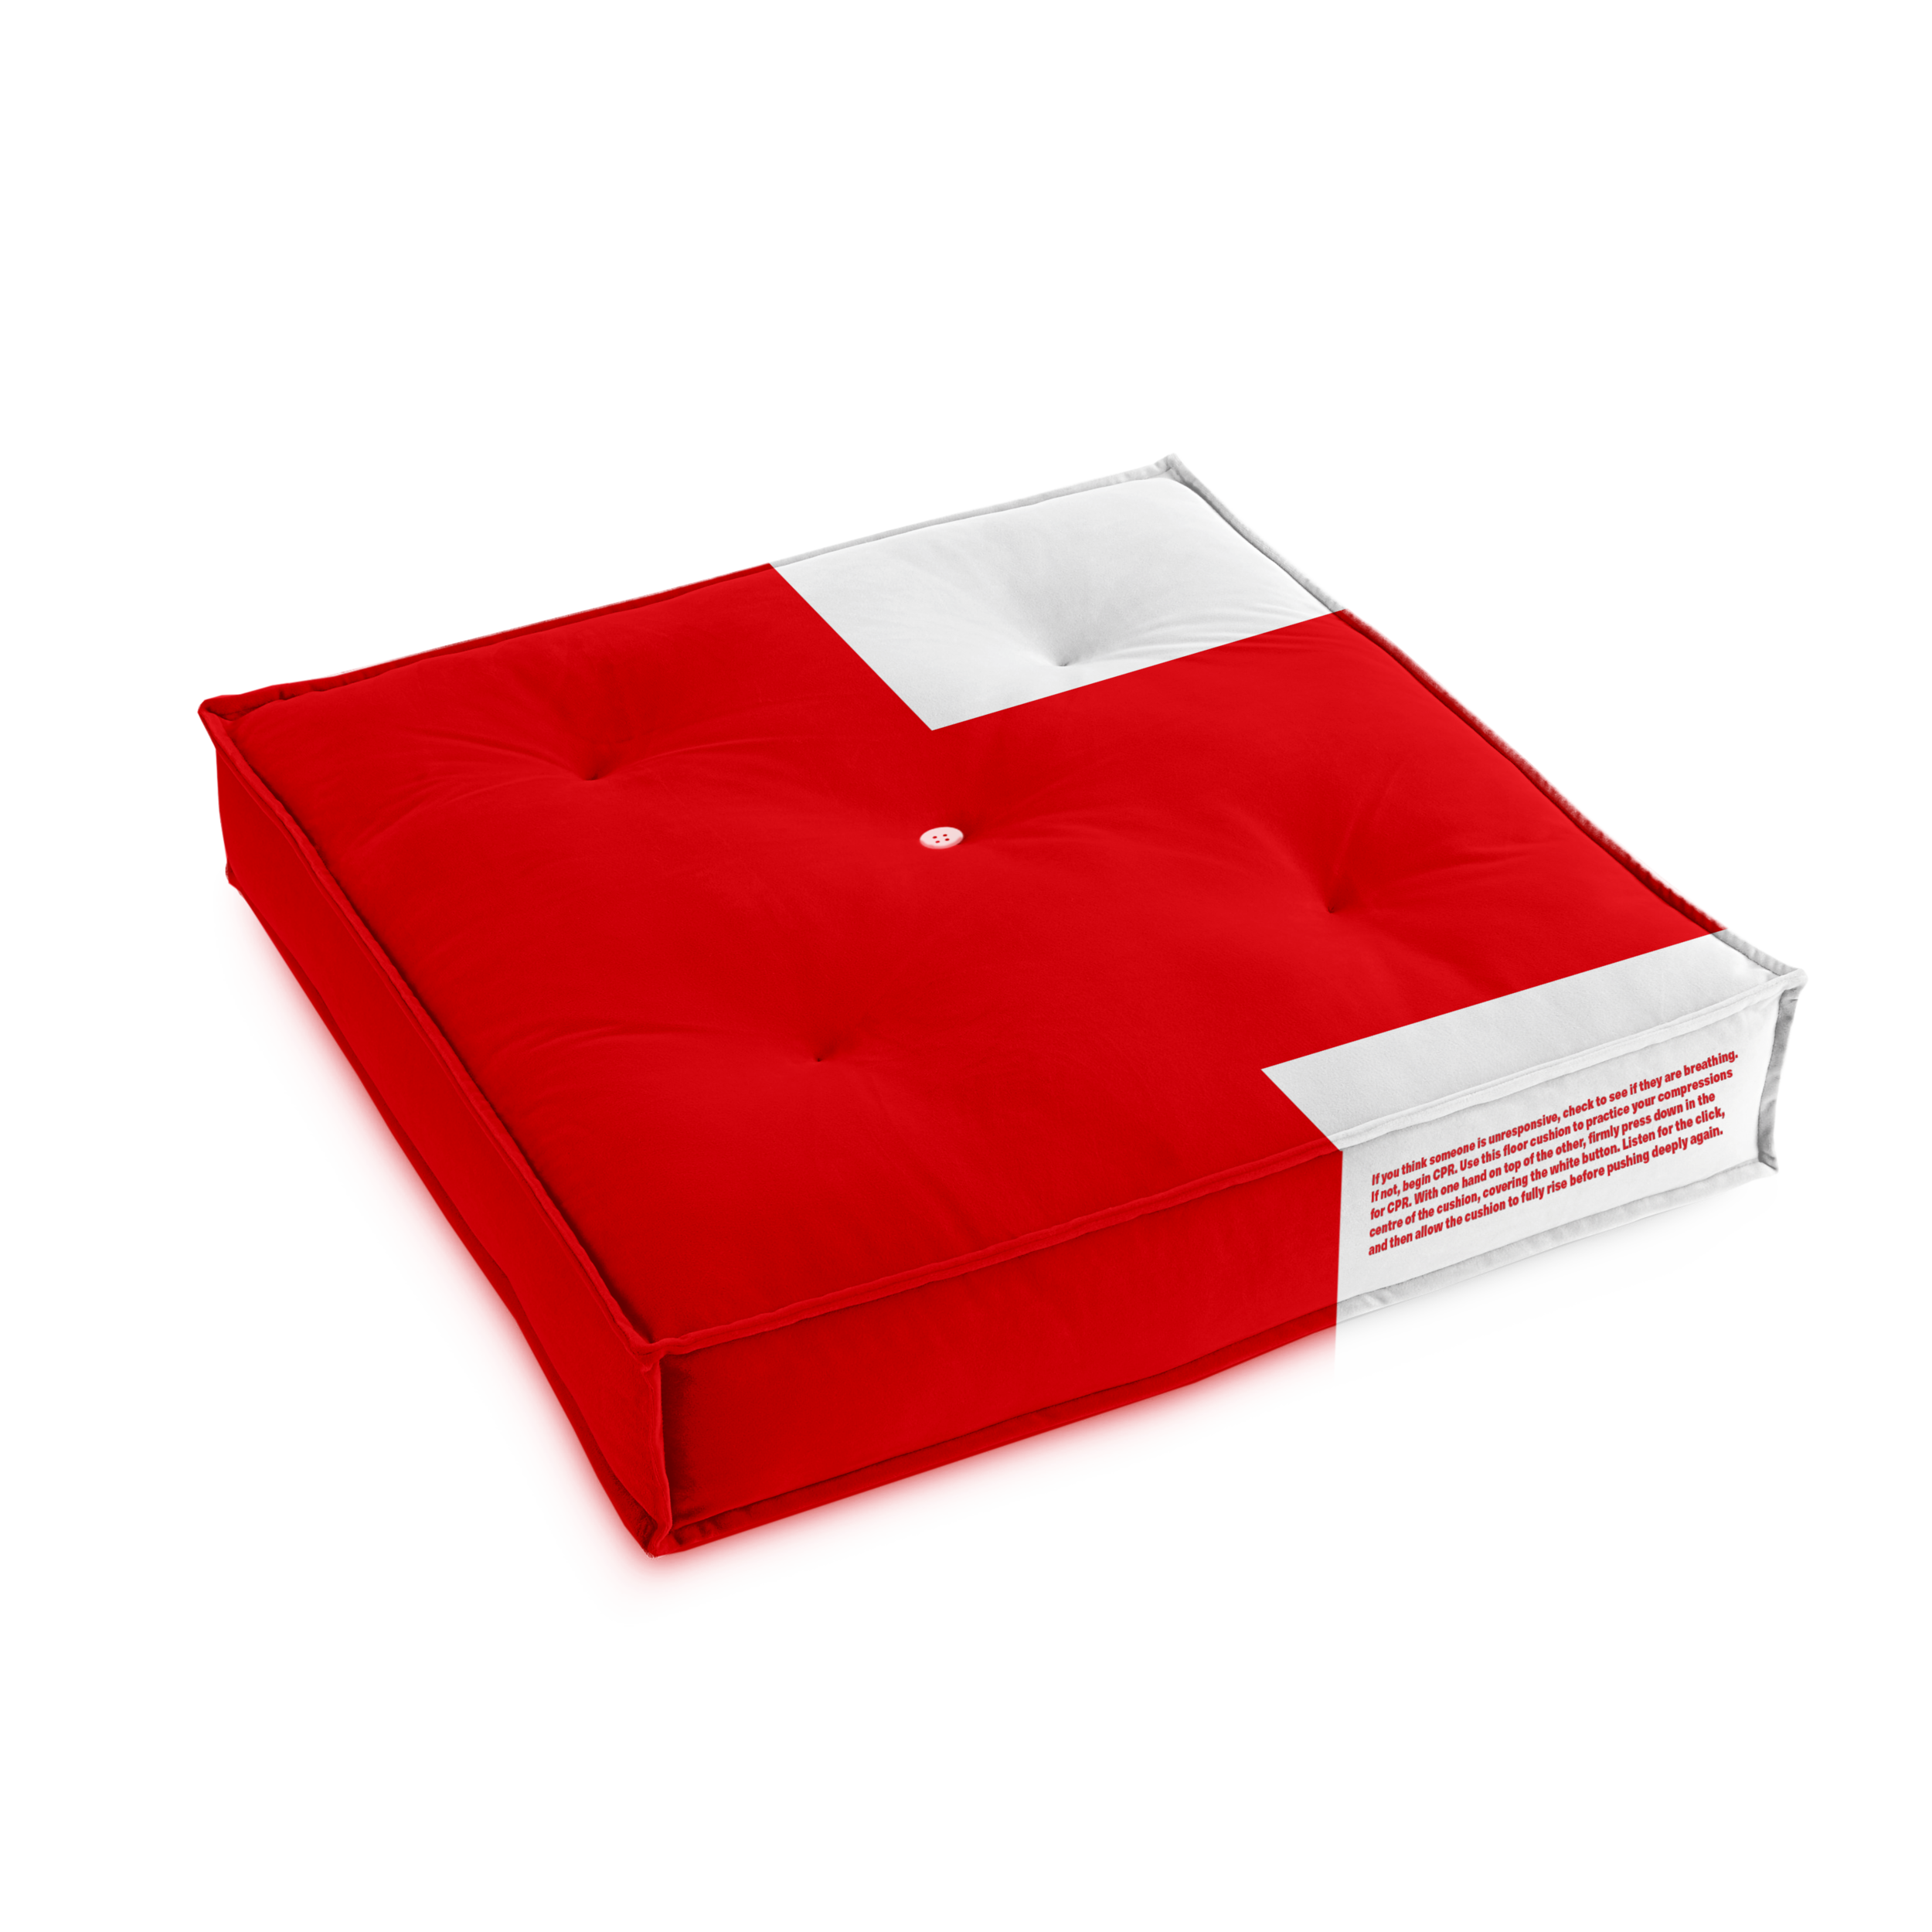 CPR Floor Pillow. - It is made of a thick foam like material that resembles the same resistance as a CPR dummy. When practicing compressions, the pillow will make a clicking noise when you press down using the correct amount of pressure.